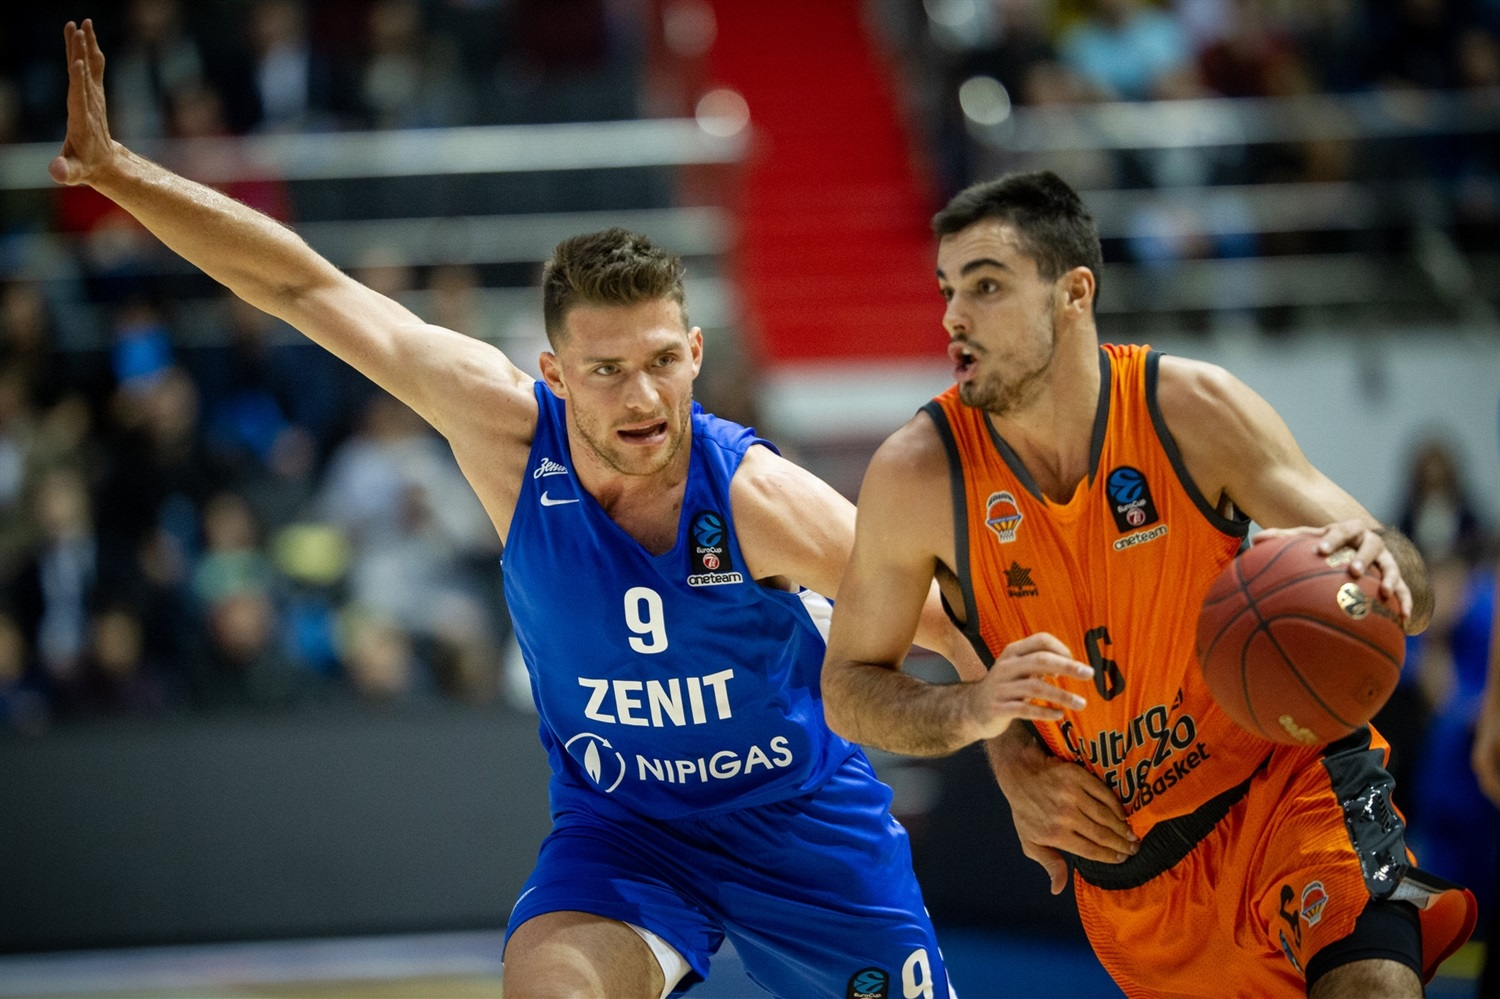 Alberto Abalde - Valencia Basket (photo Zenit) - EC18